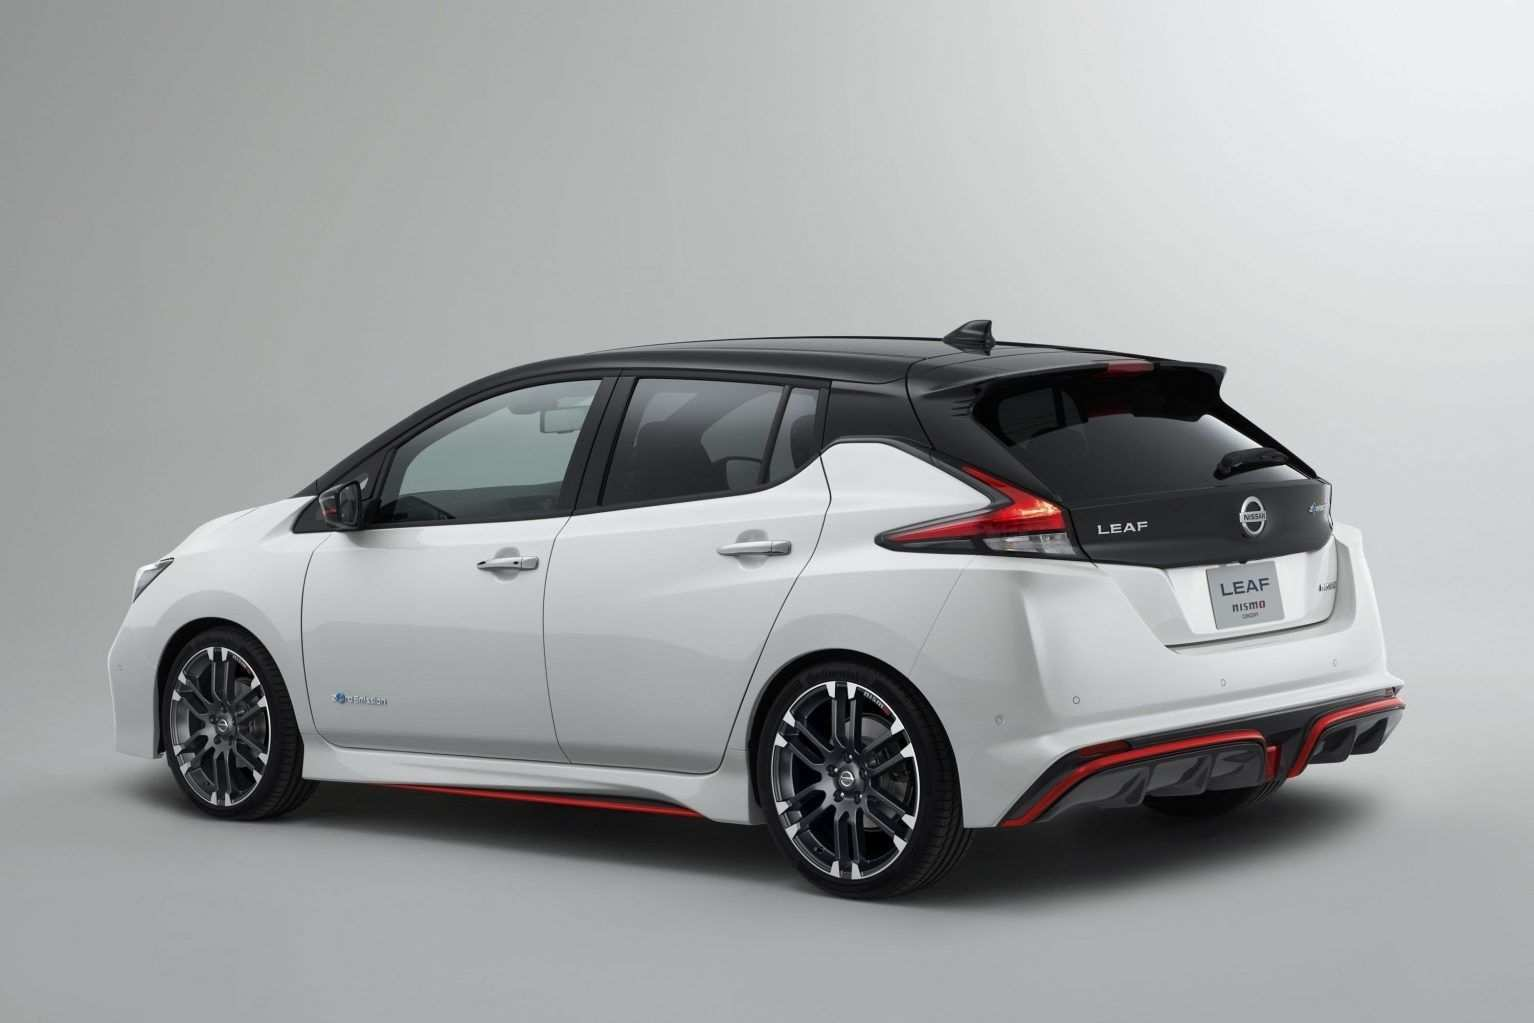 34 Great Nissan Leaf Nismo 2019 Performance And New Engine Spesification for Nissan Leaf Nismo 2019 Performance And New Engine